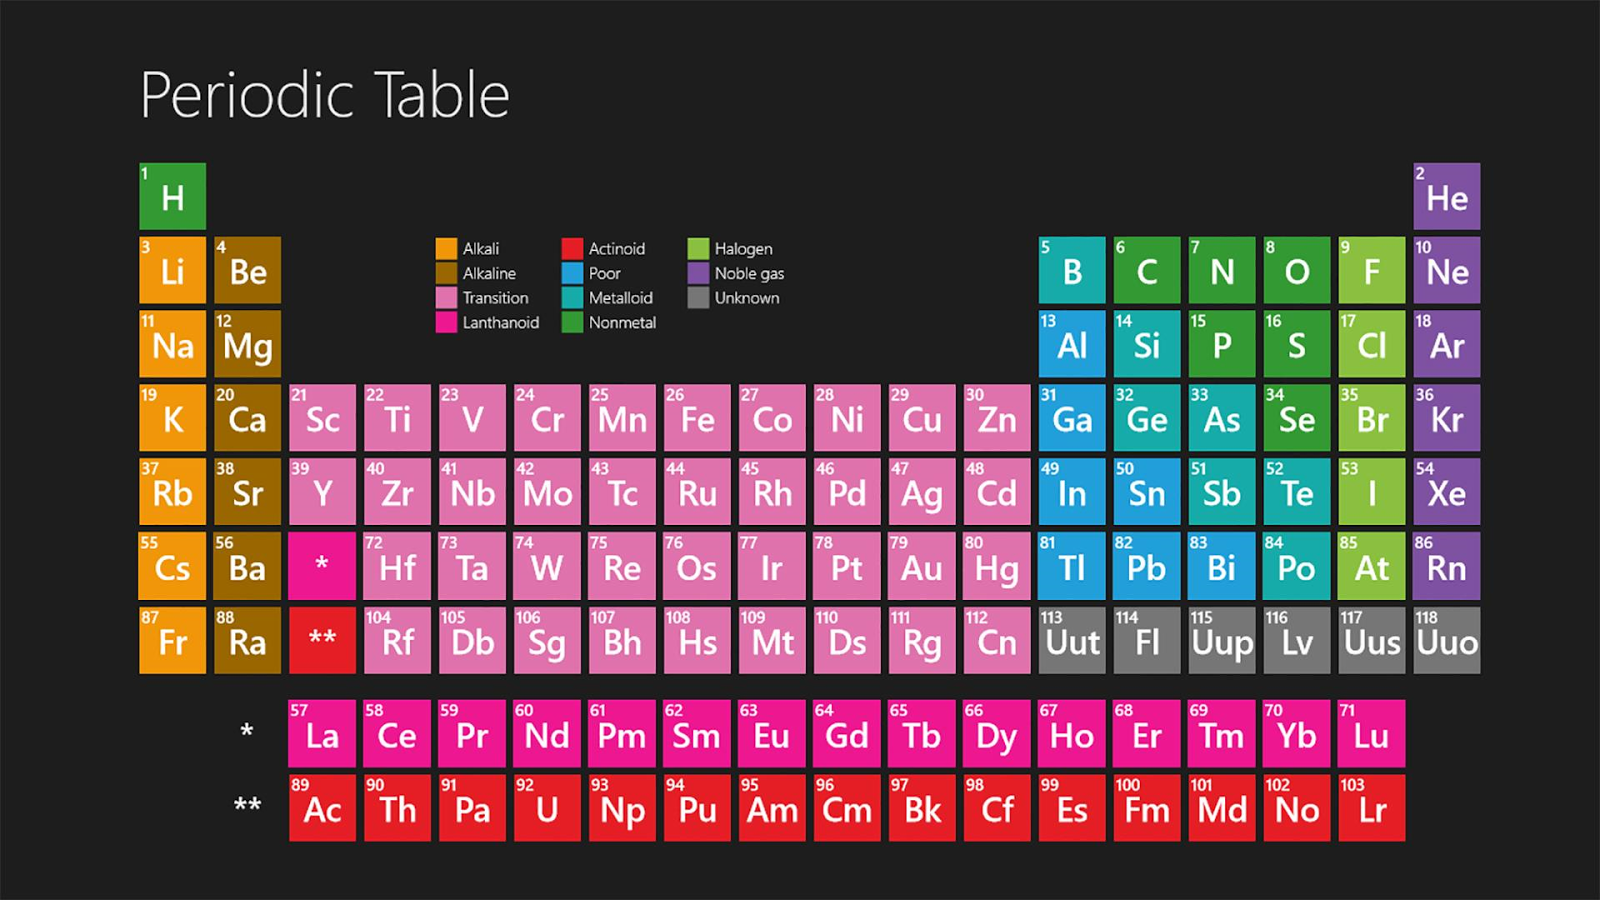 The periodic table wallpaper 10 apk download android wallpaper 10 screenshot 1 the periodic table wallpaper 10 screenshot 2 urtaz Choice Image